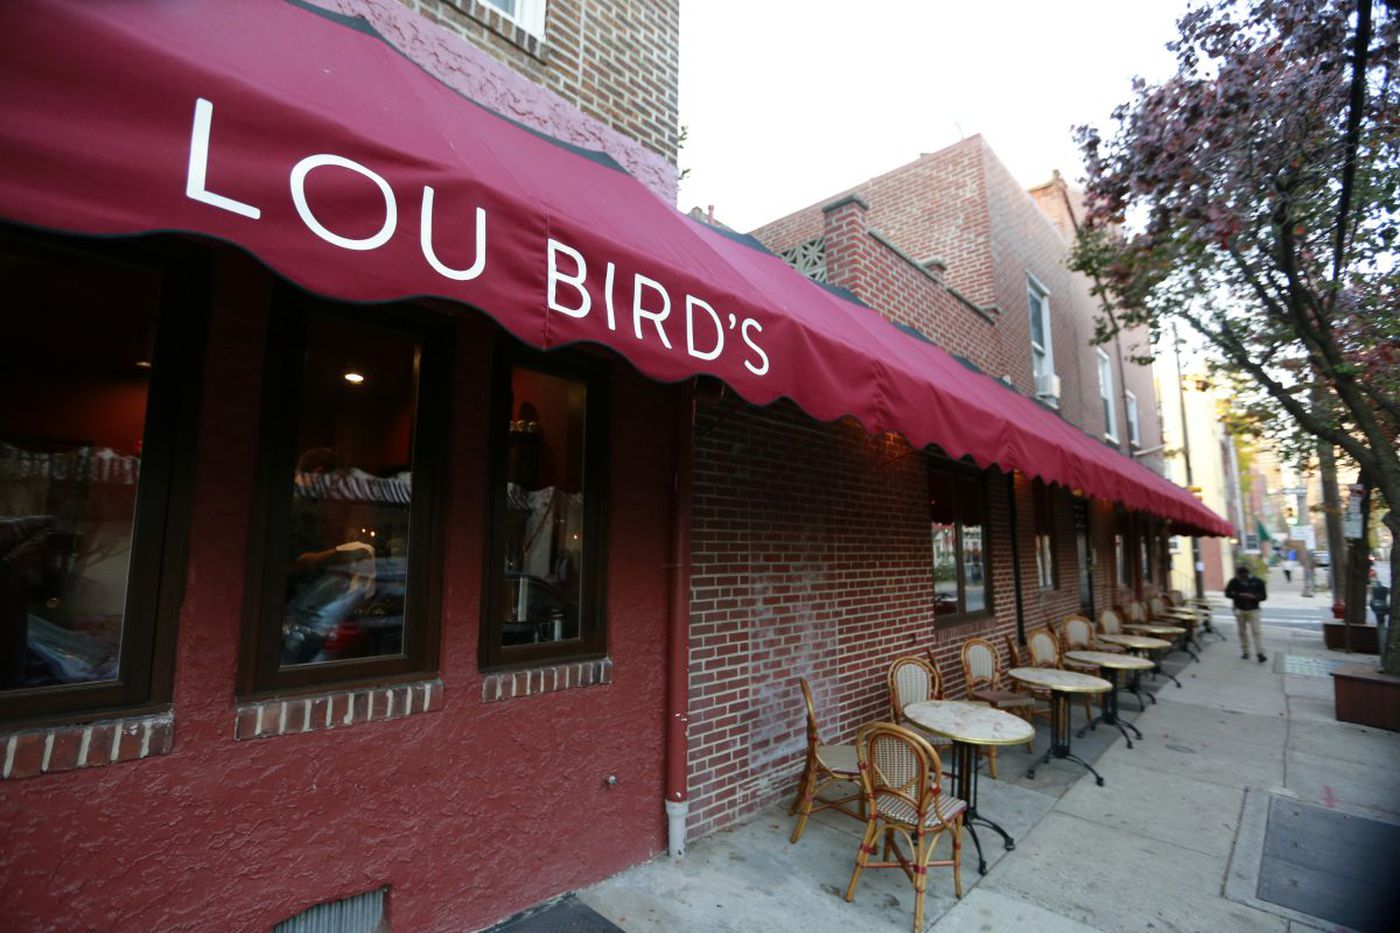 Lou Bird's returns after a kitchen 'reboot'